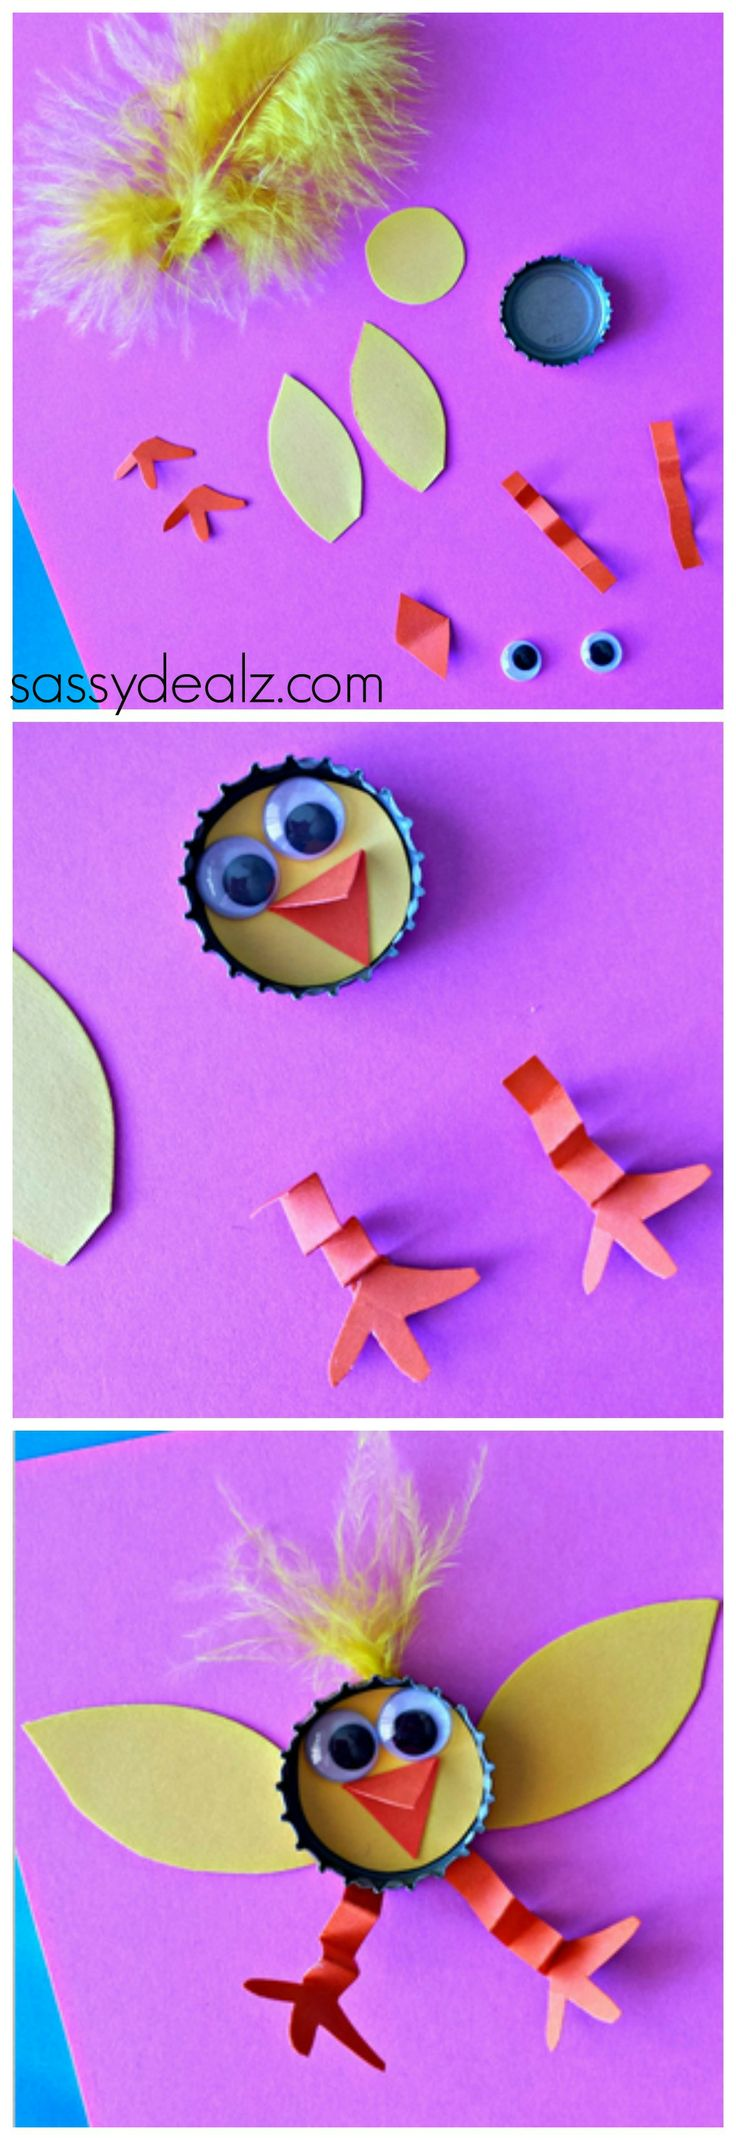 Bottle Cap Chick Craft for Kids! #Easter craft #DIY | CraftyMorning.com